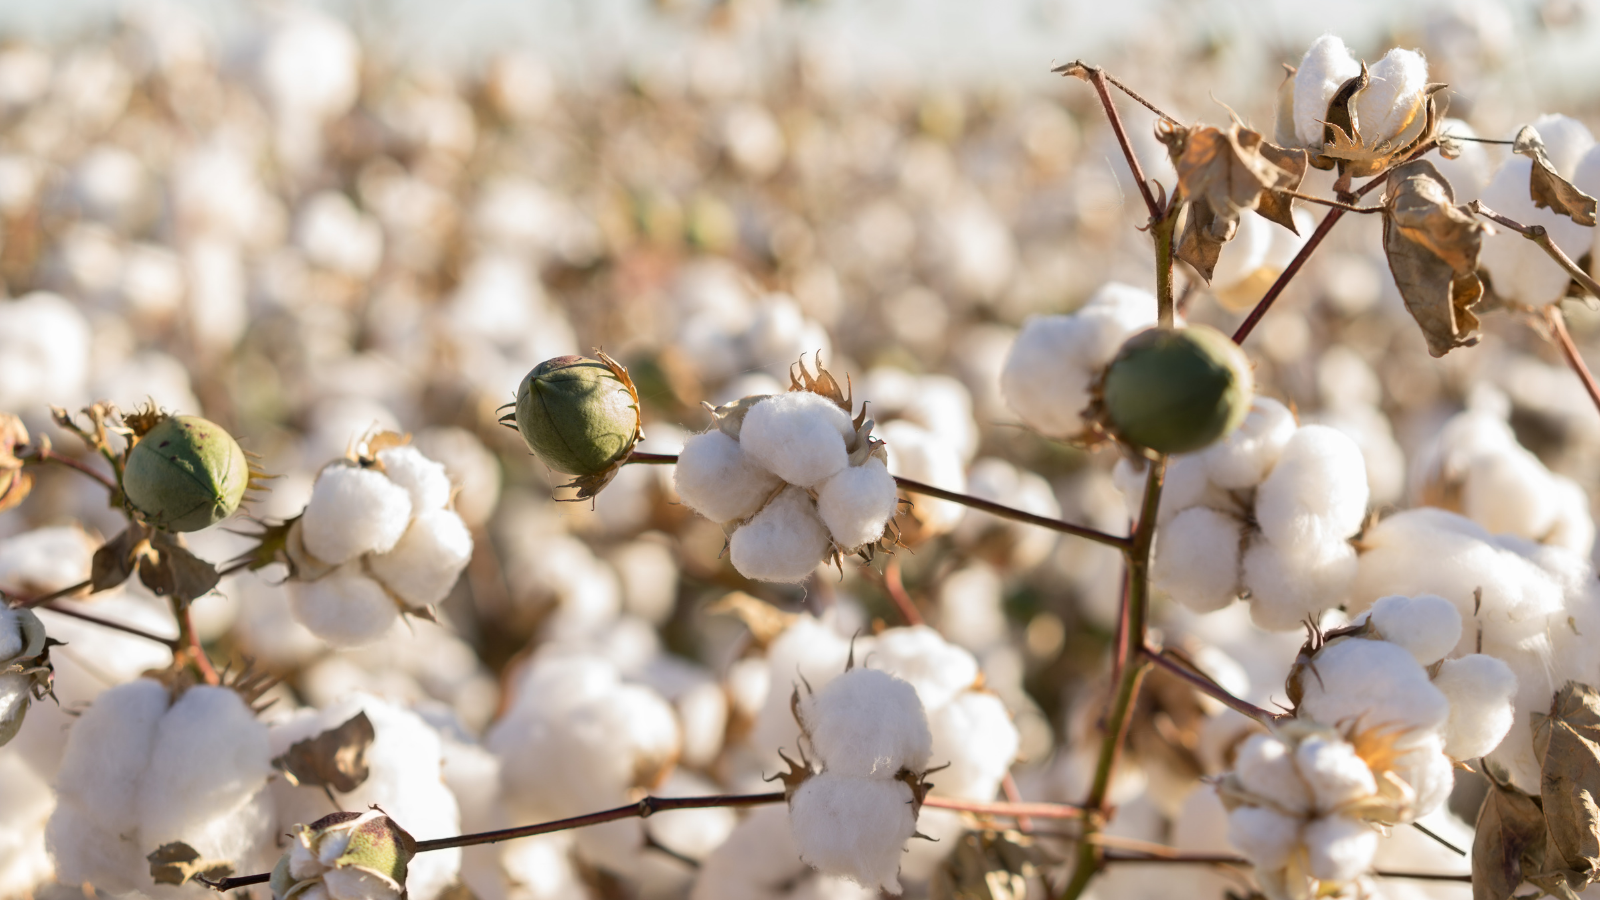 The 'World's Dirtiest Crop': Pesticide Use in Cotton Production